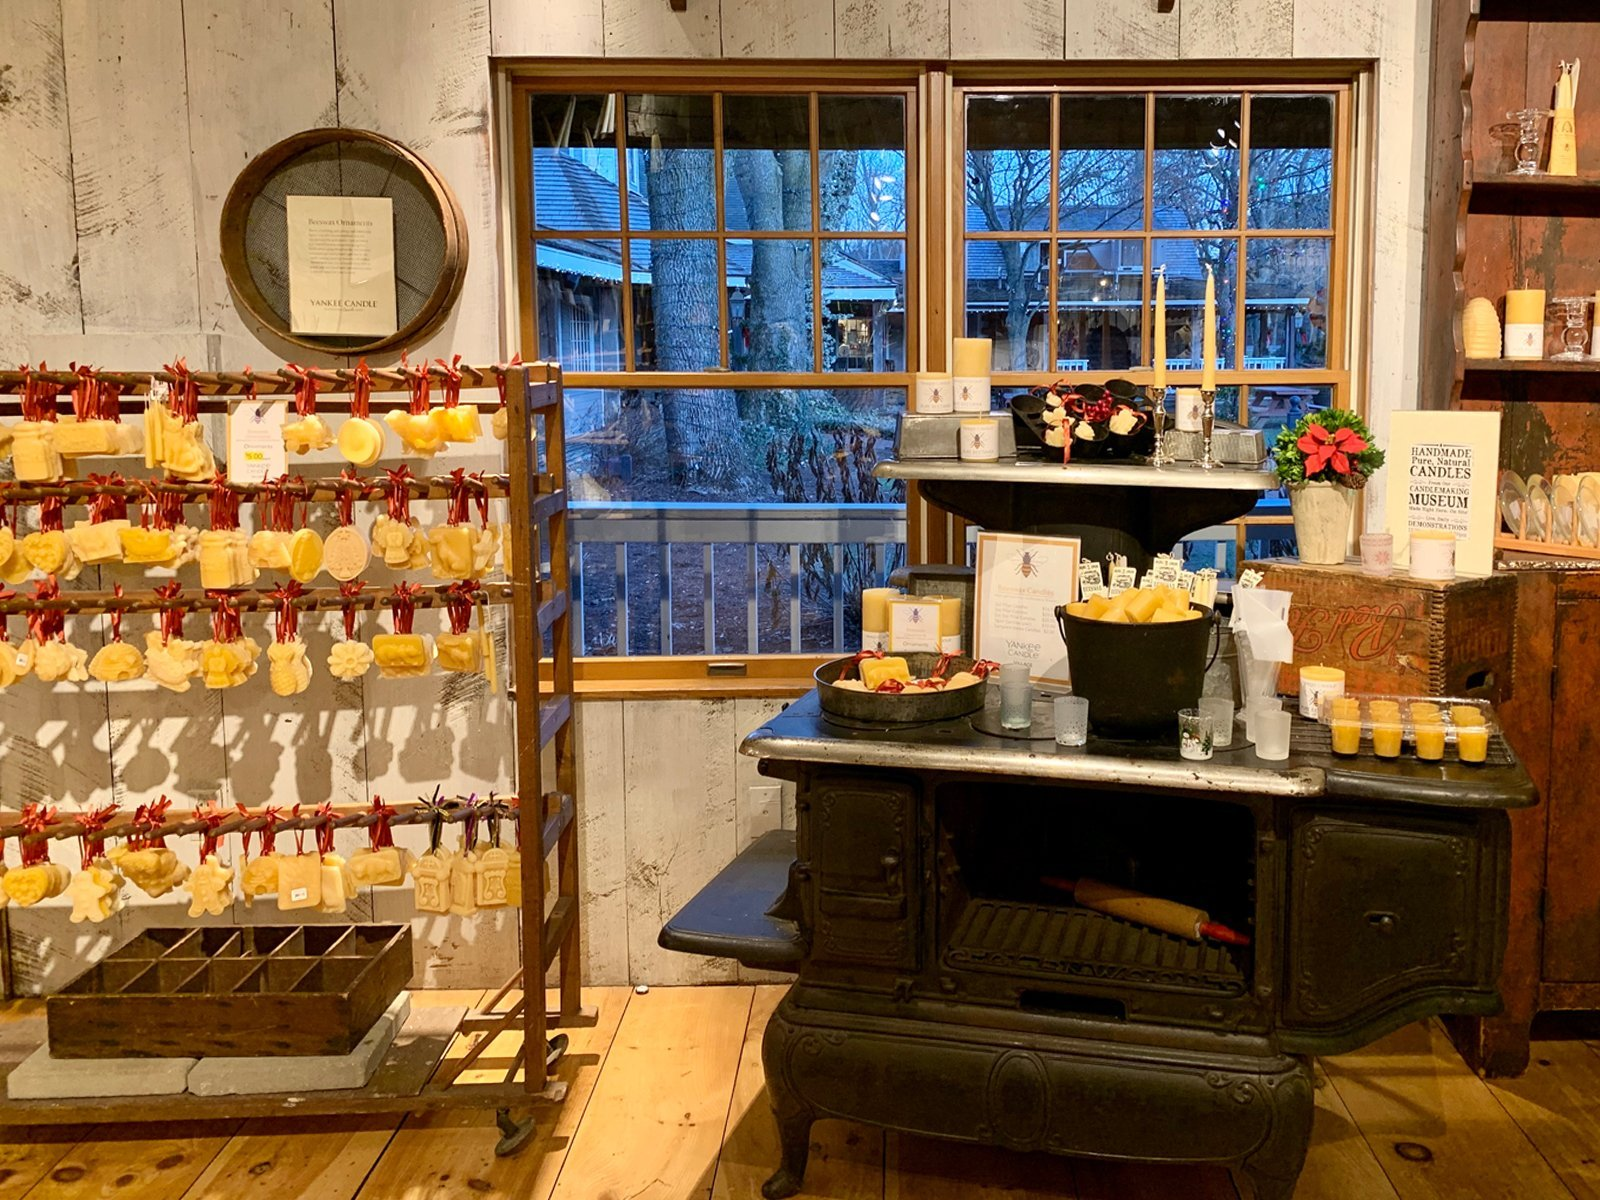 display of beeswax candle gifts at the Yankee Candle Village Store in South Deerfield, Massachusetts